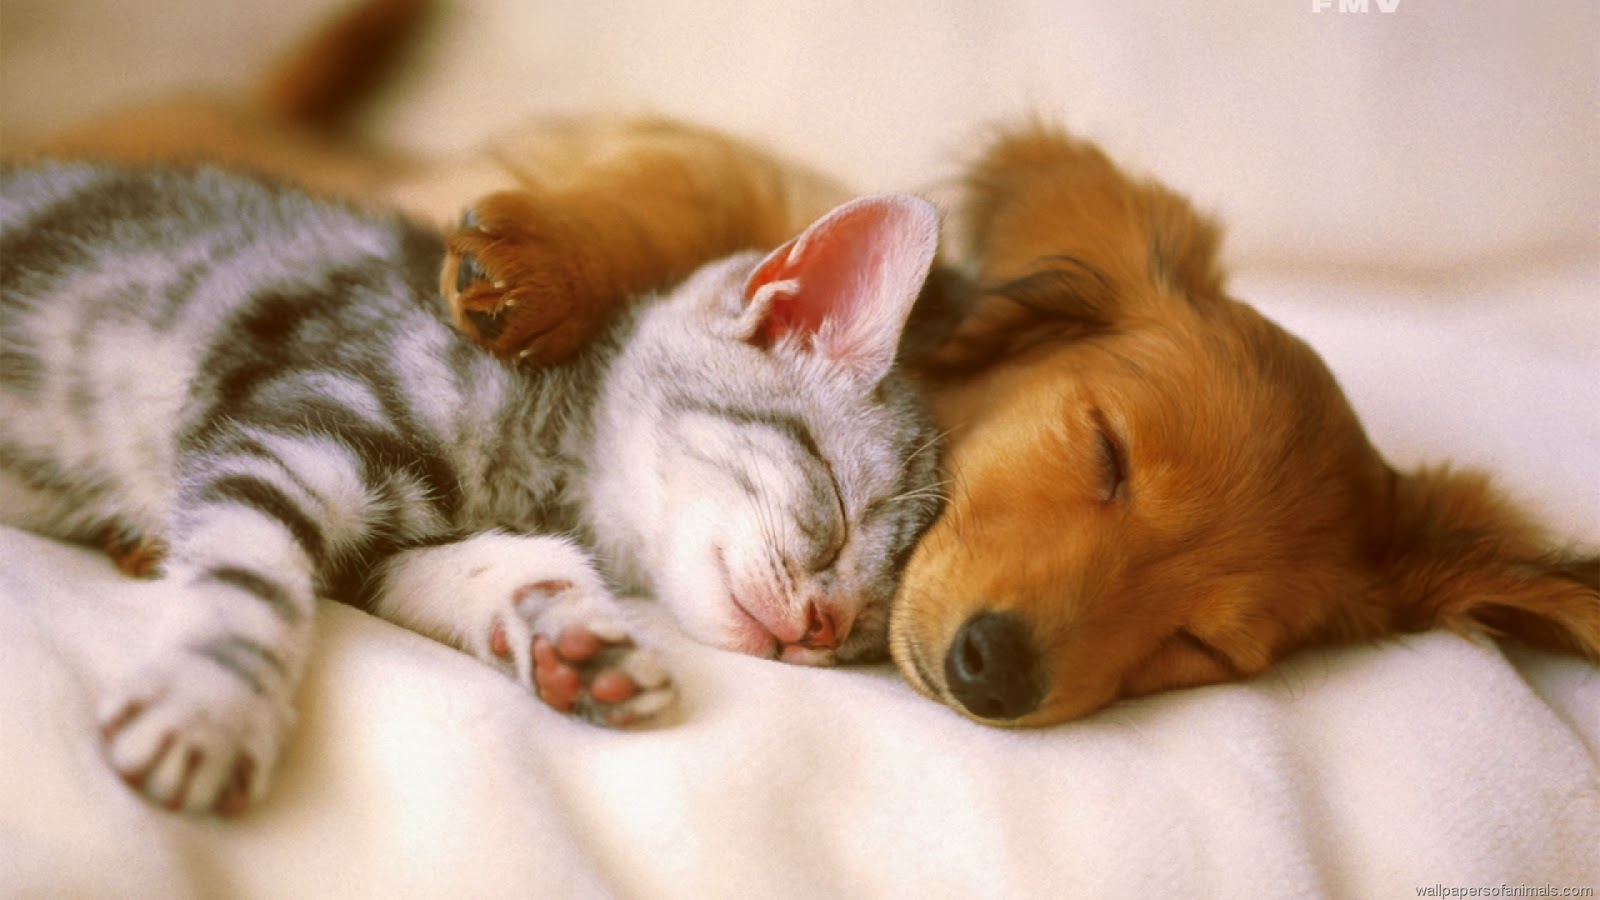 Cute Dog With Cat Desktop Background Wallpaper 1600x900